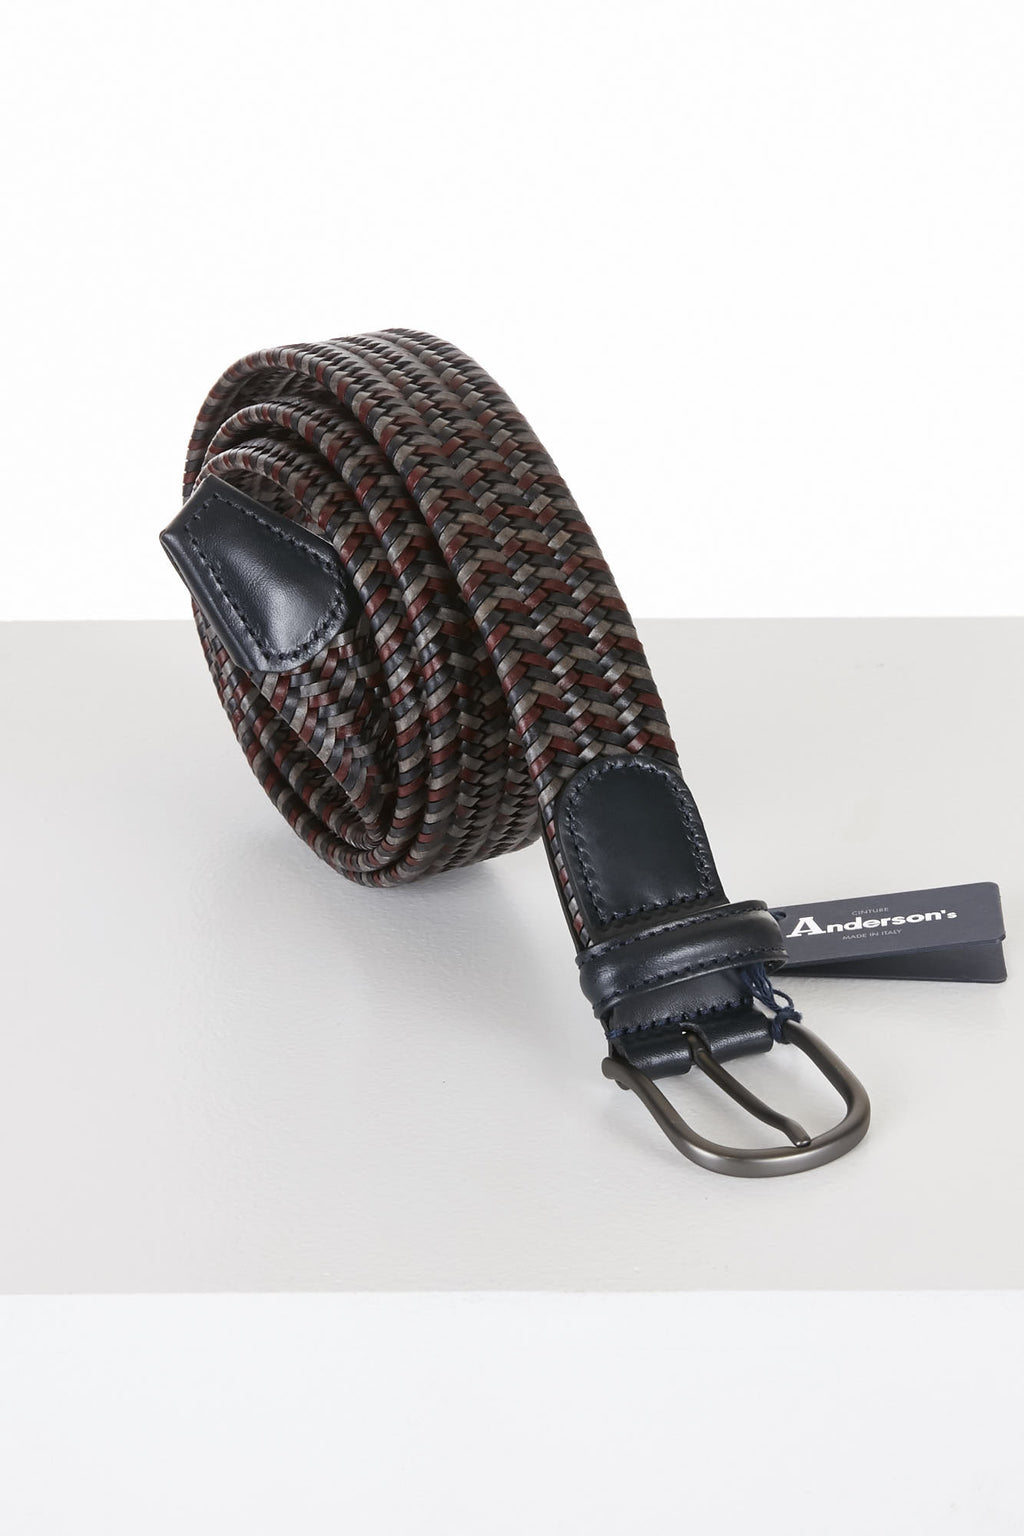 Anderson's Belt Multicoloured Black/Grey/Maroon Leather Stretch - Lalonde's Oakville, Toronto Canada